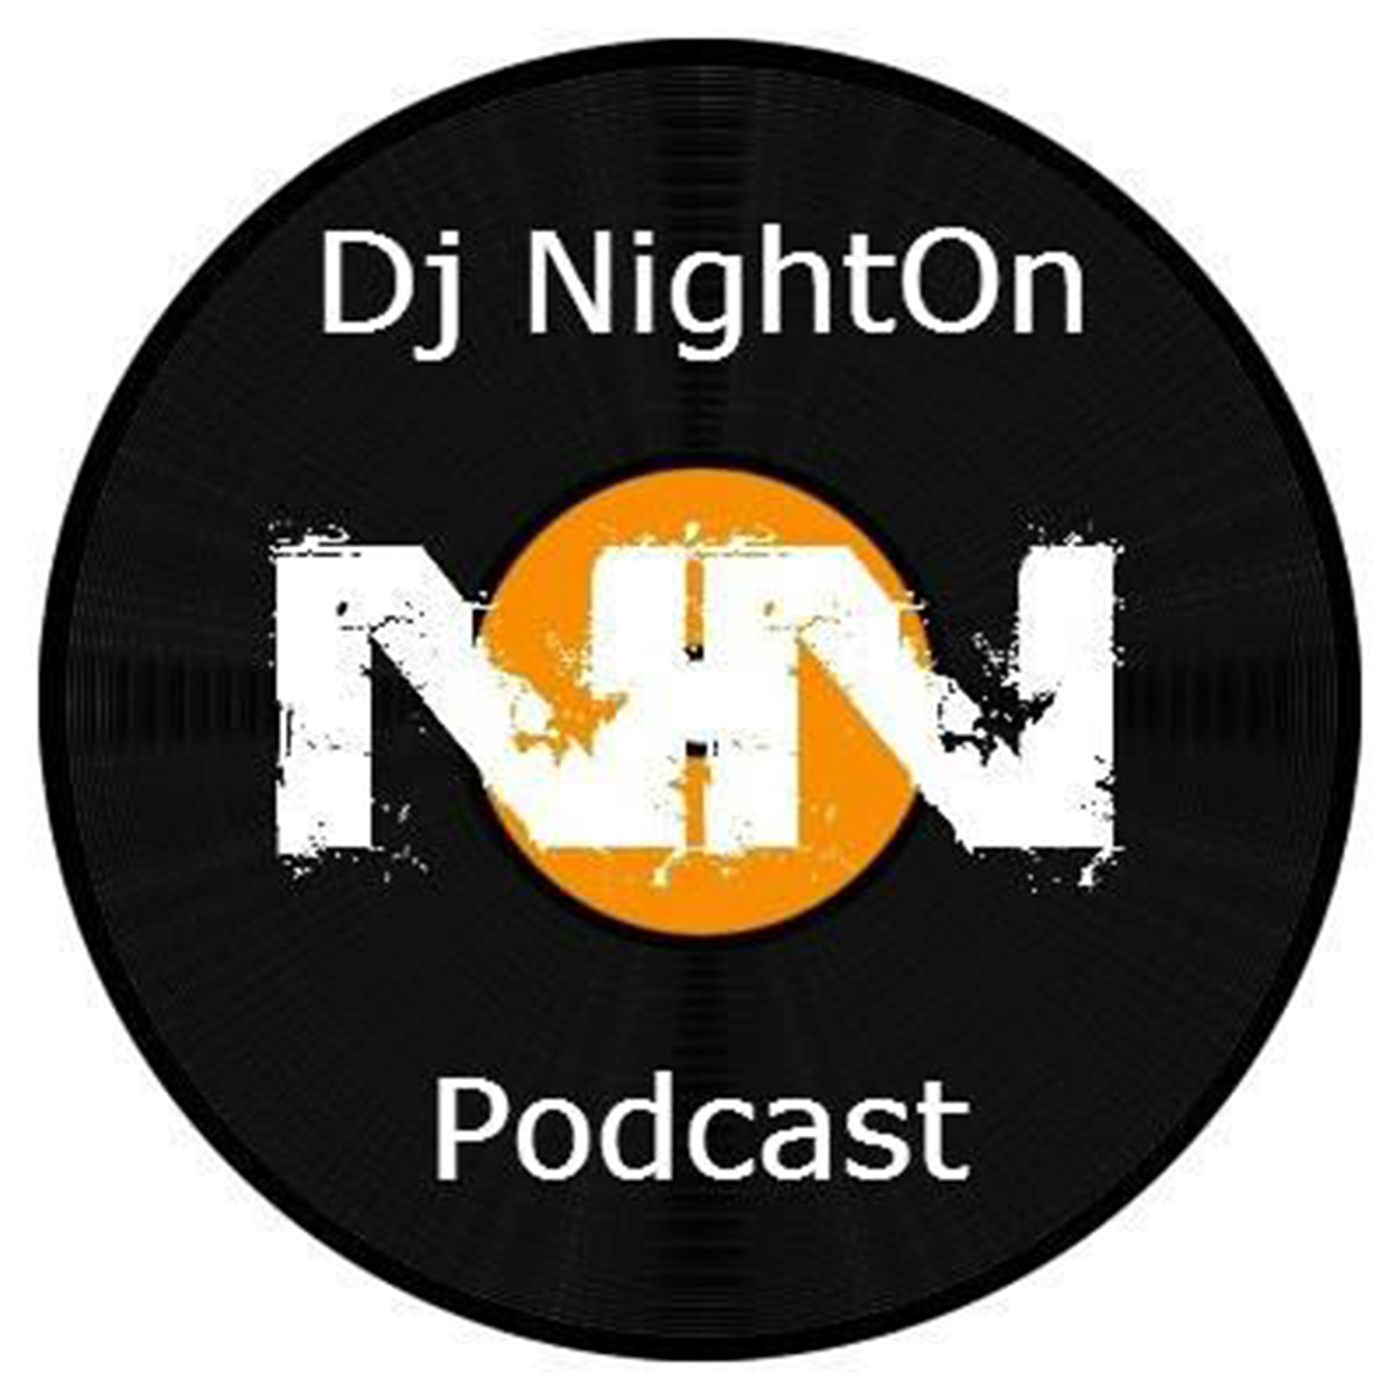 Dj NightOn